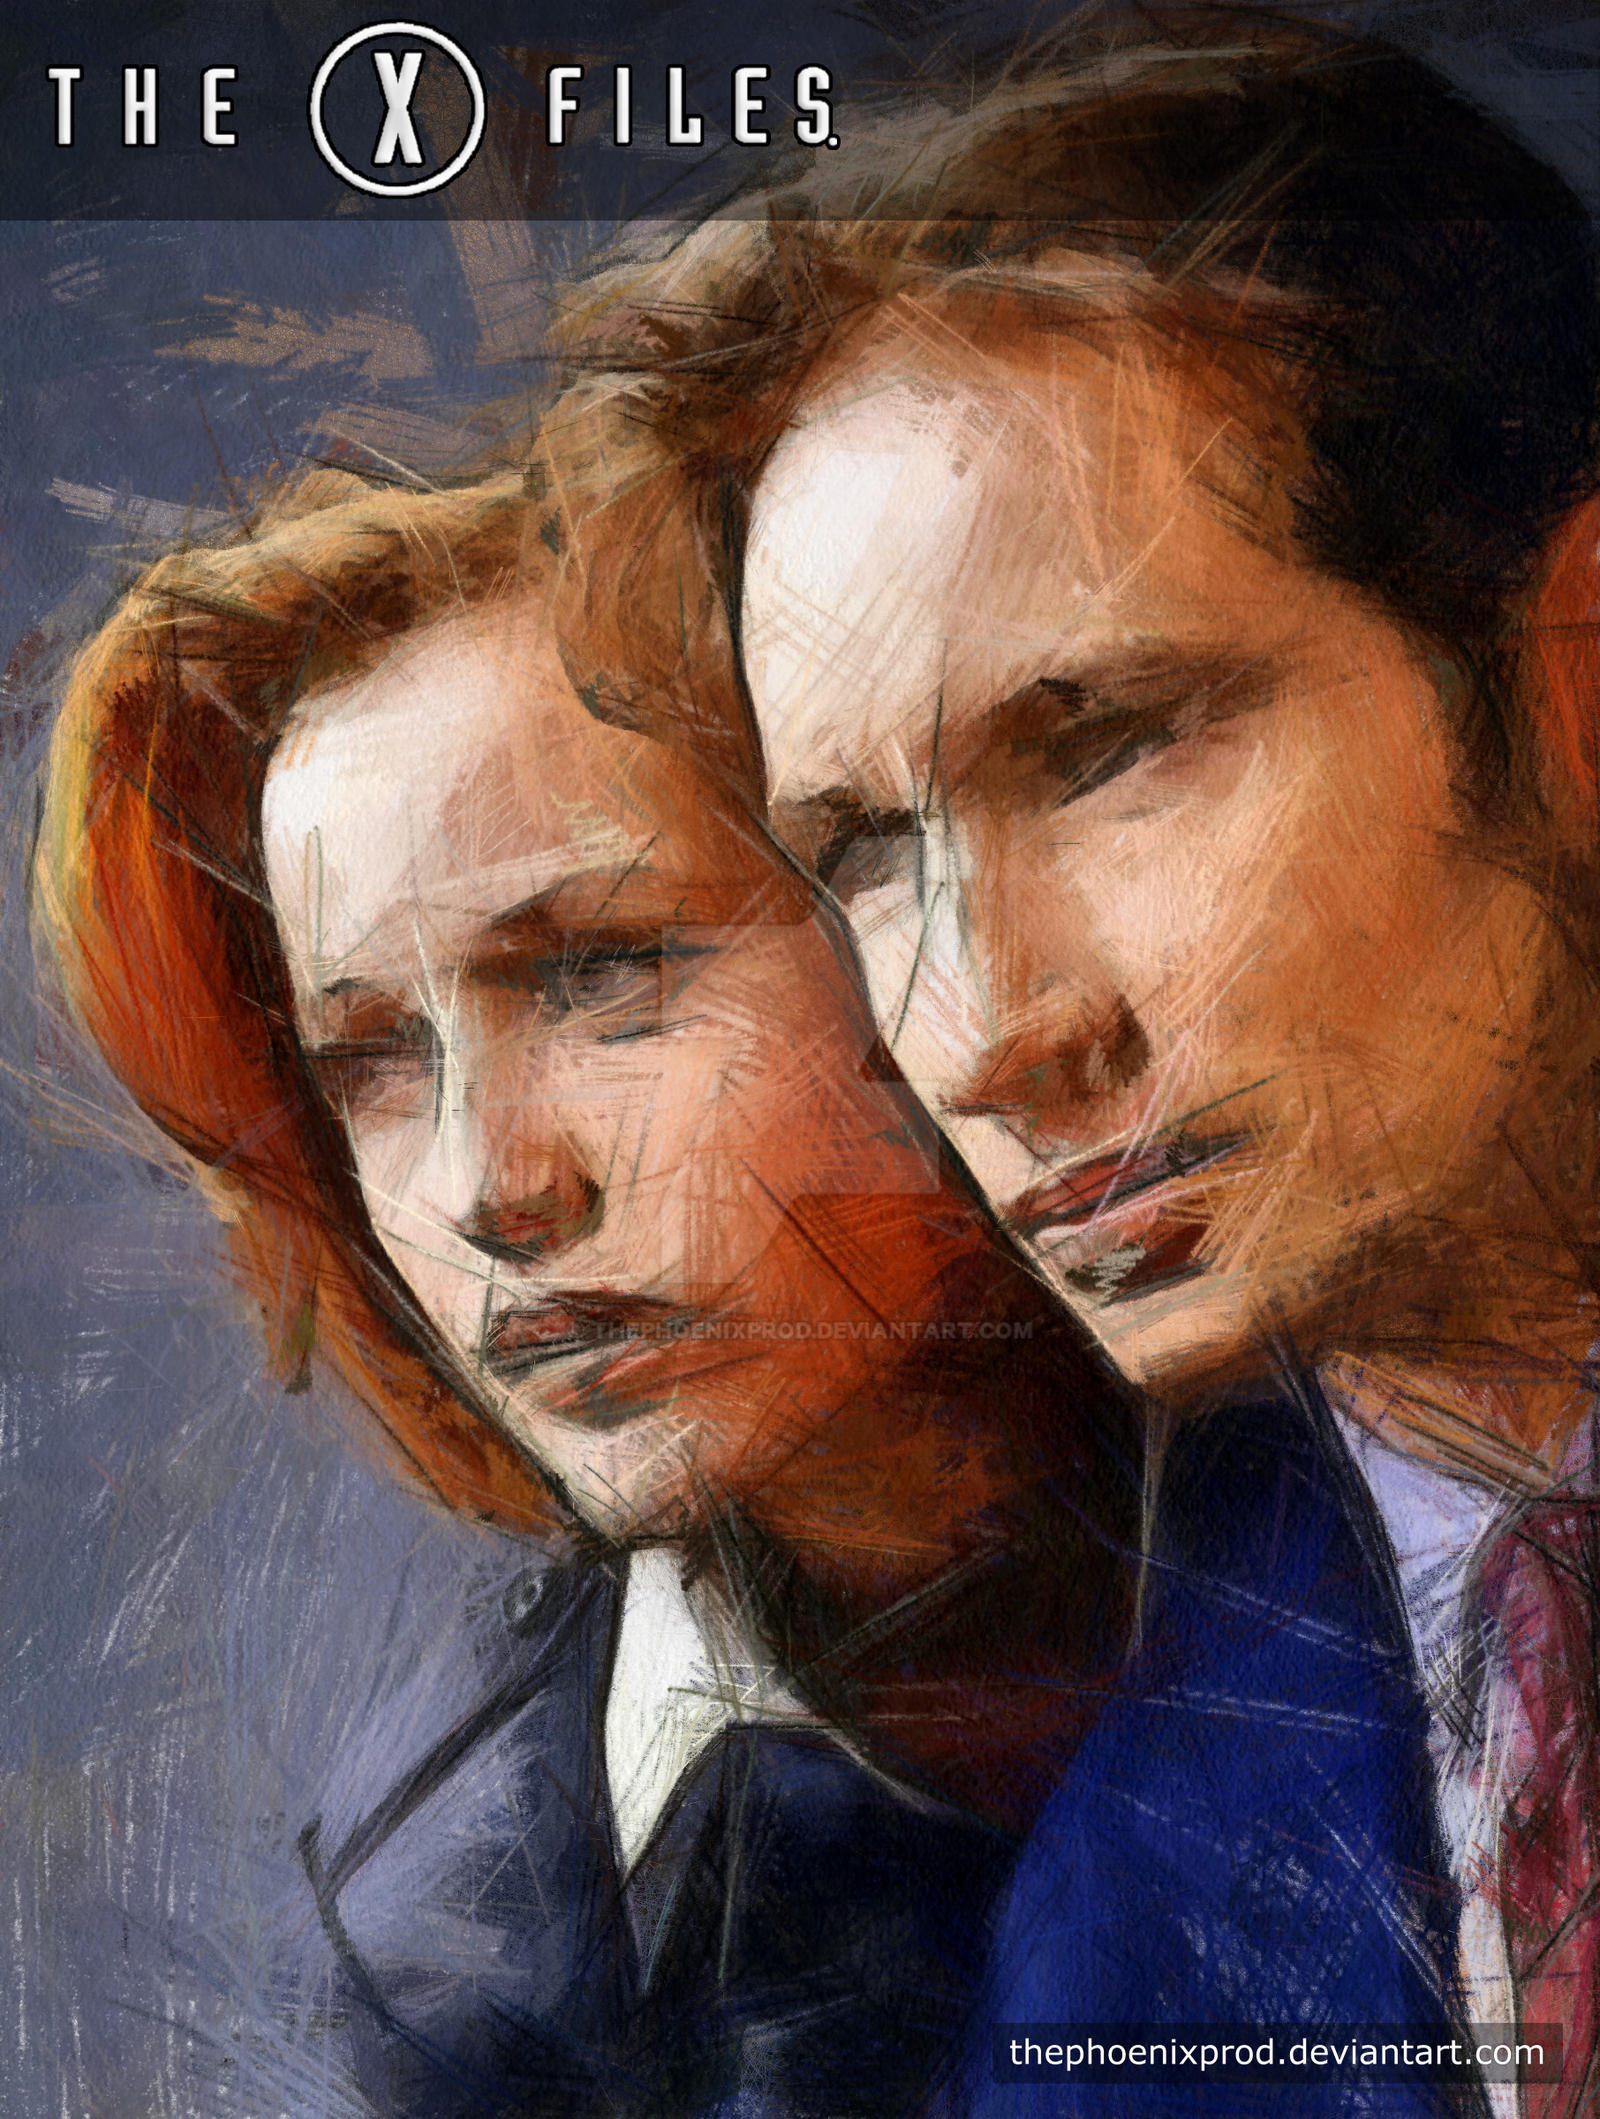 The X Files - Mulder and Scully by thephoenixprod